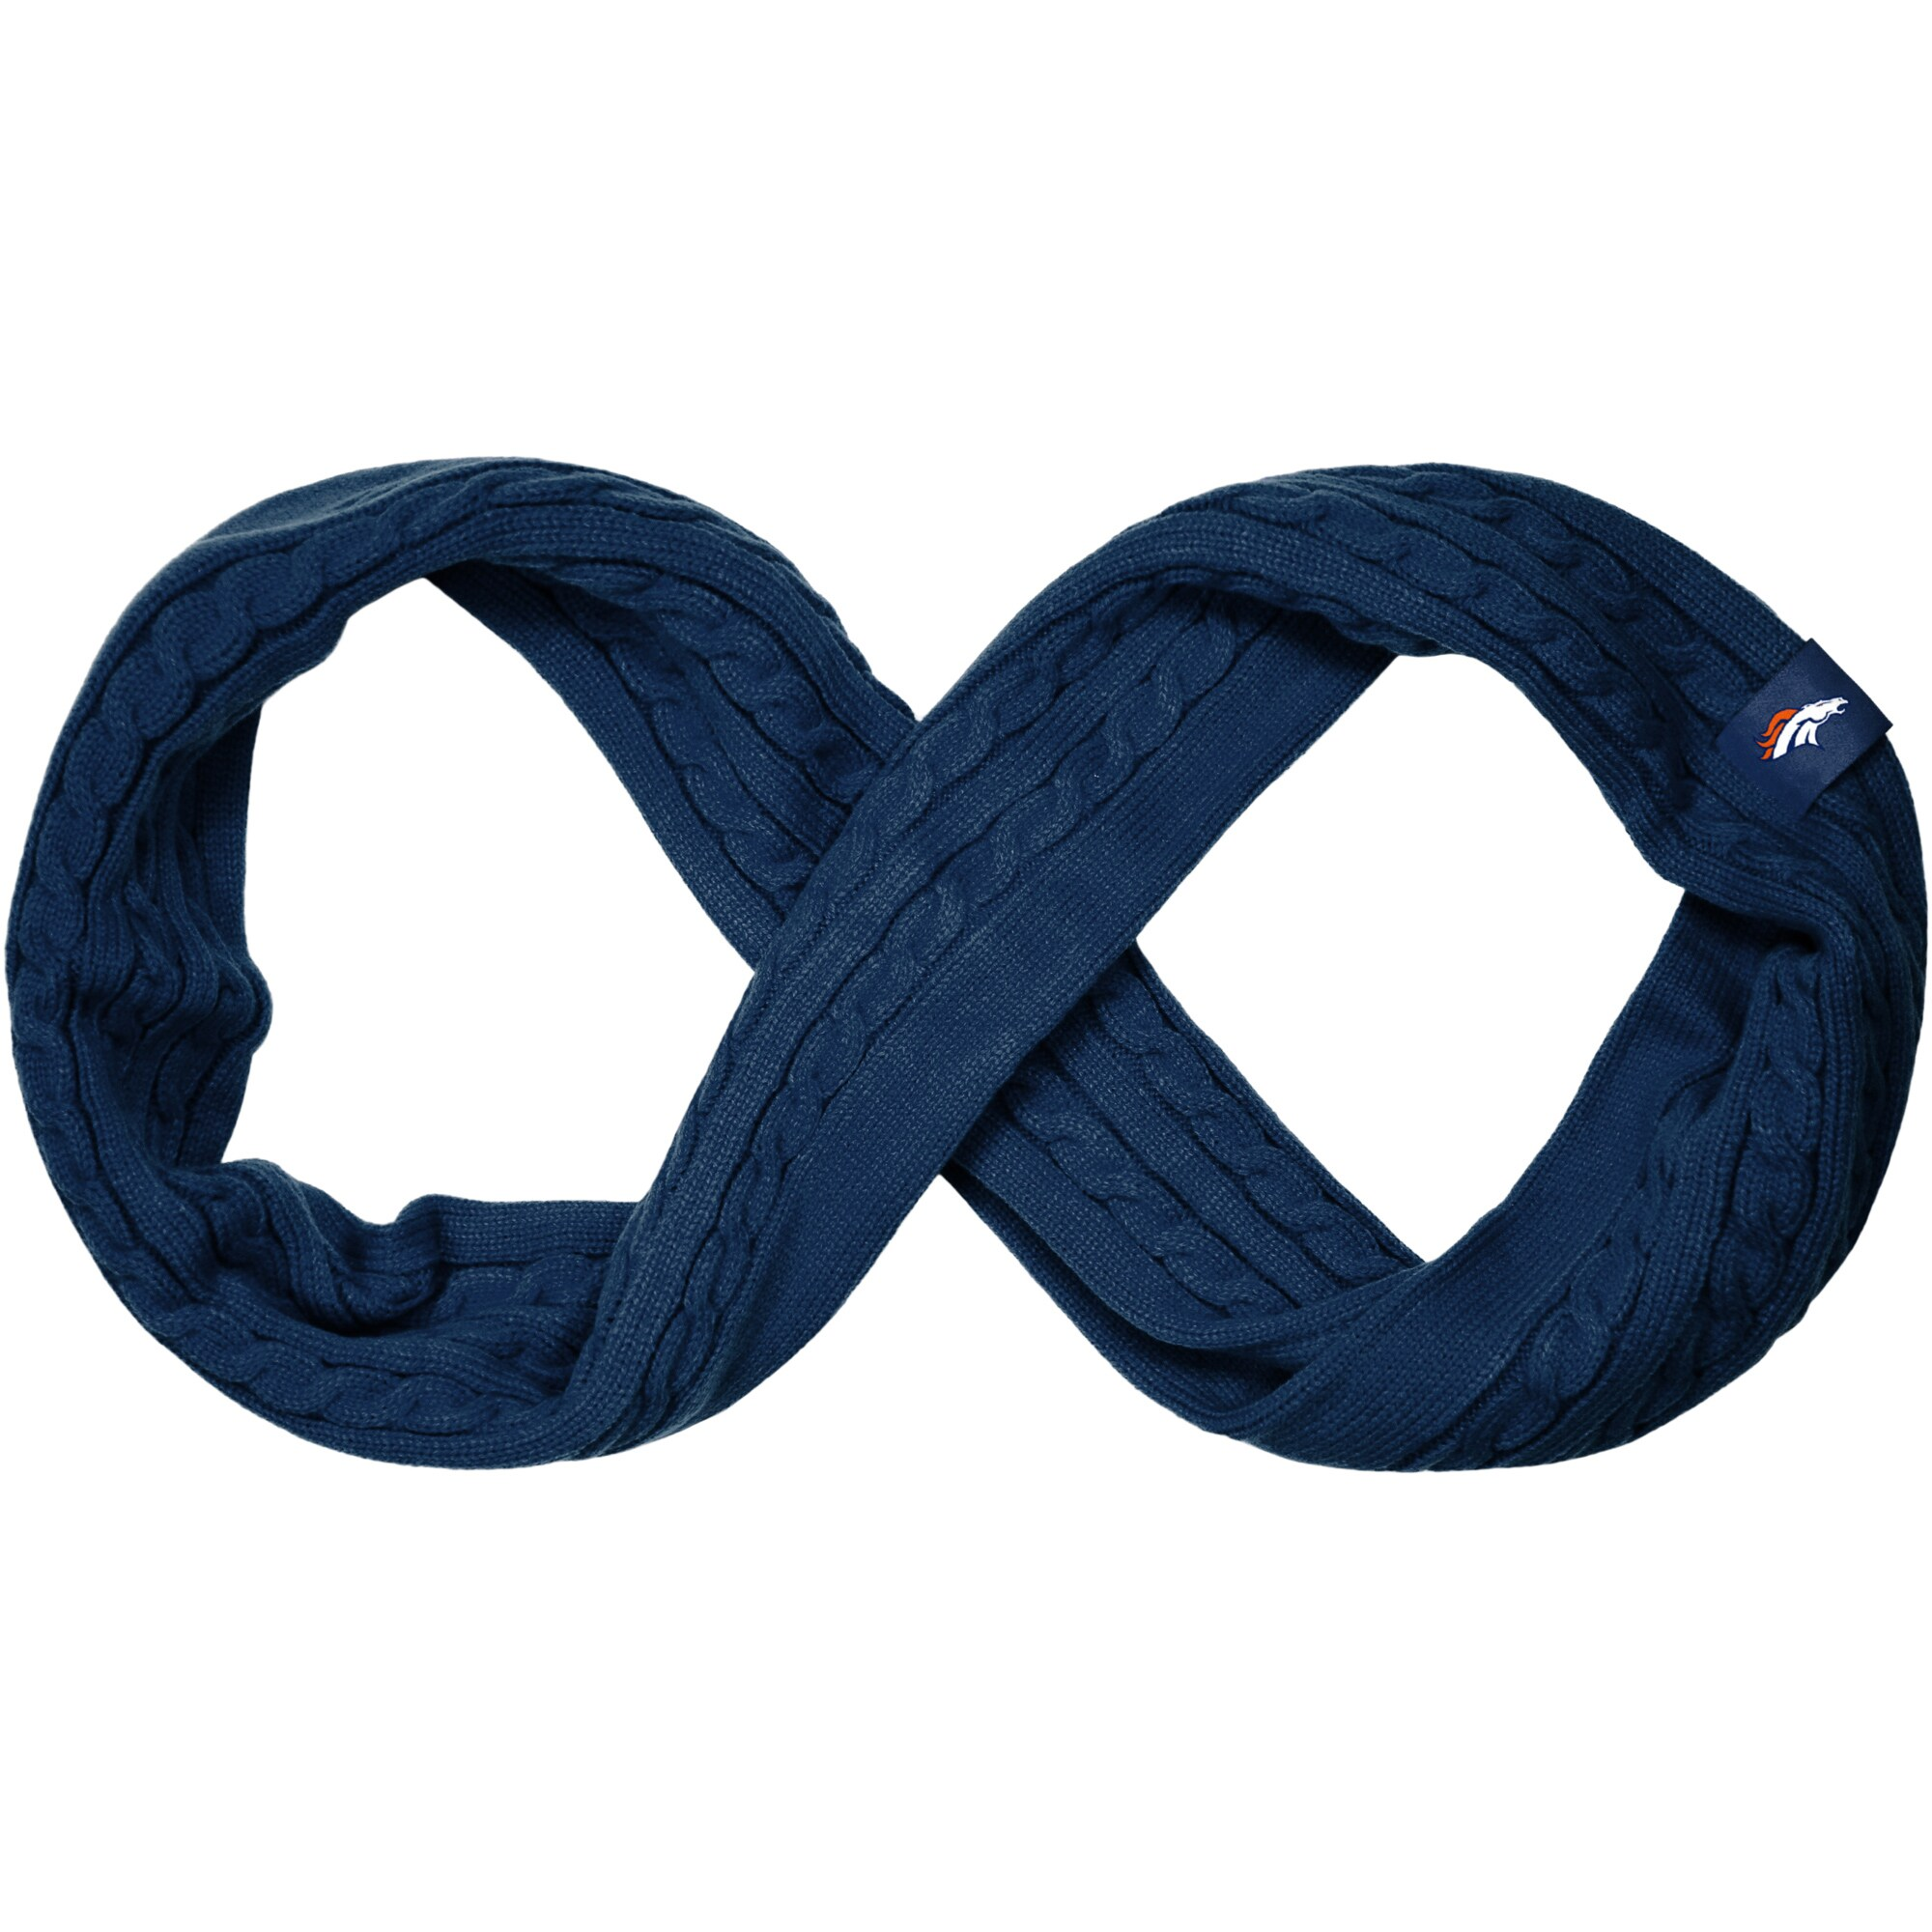 Denver Broncos Women's Cable Knit Infinity Scarf - Navy